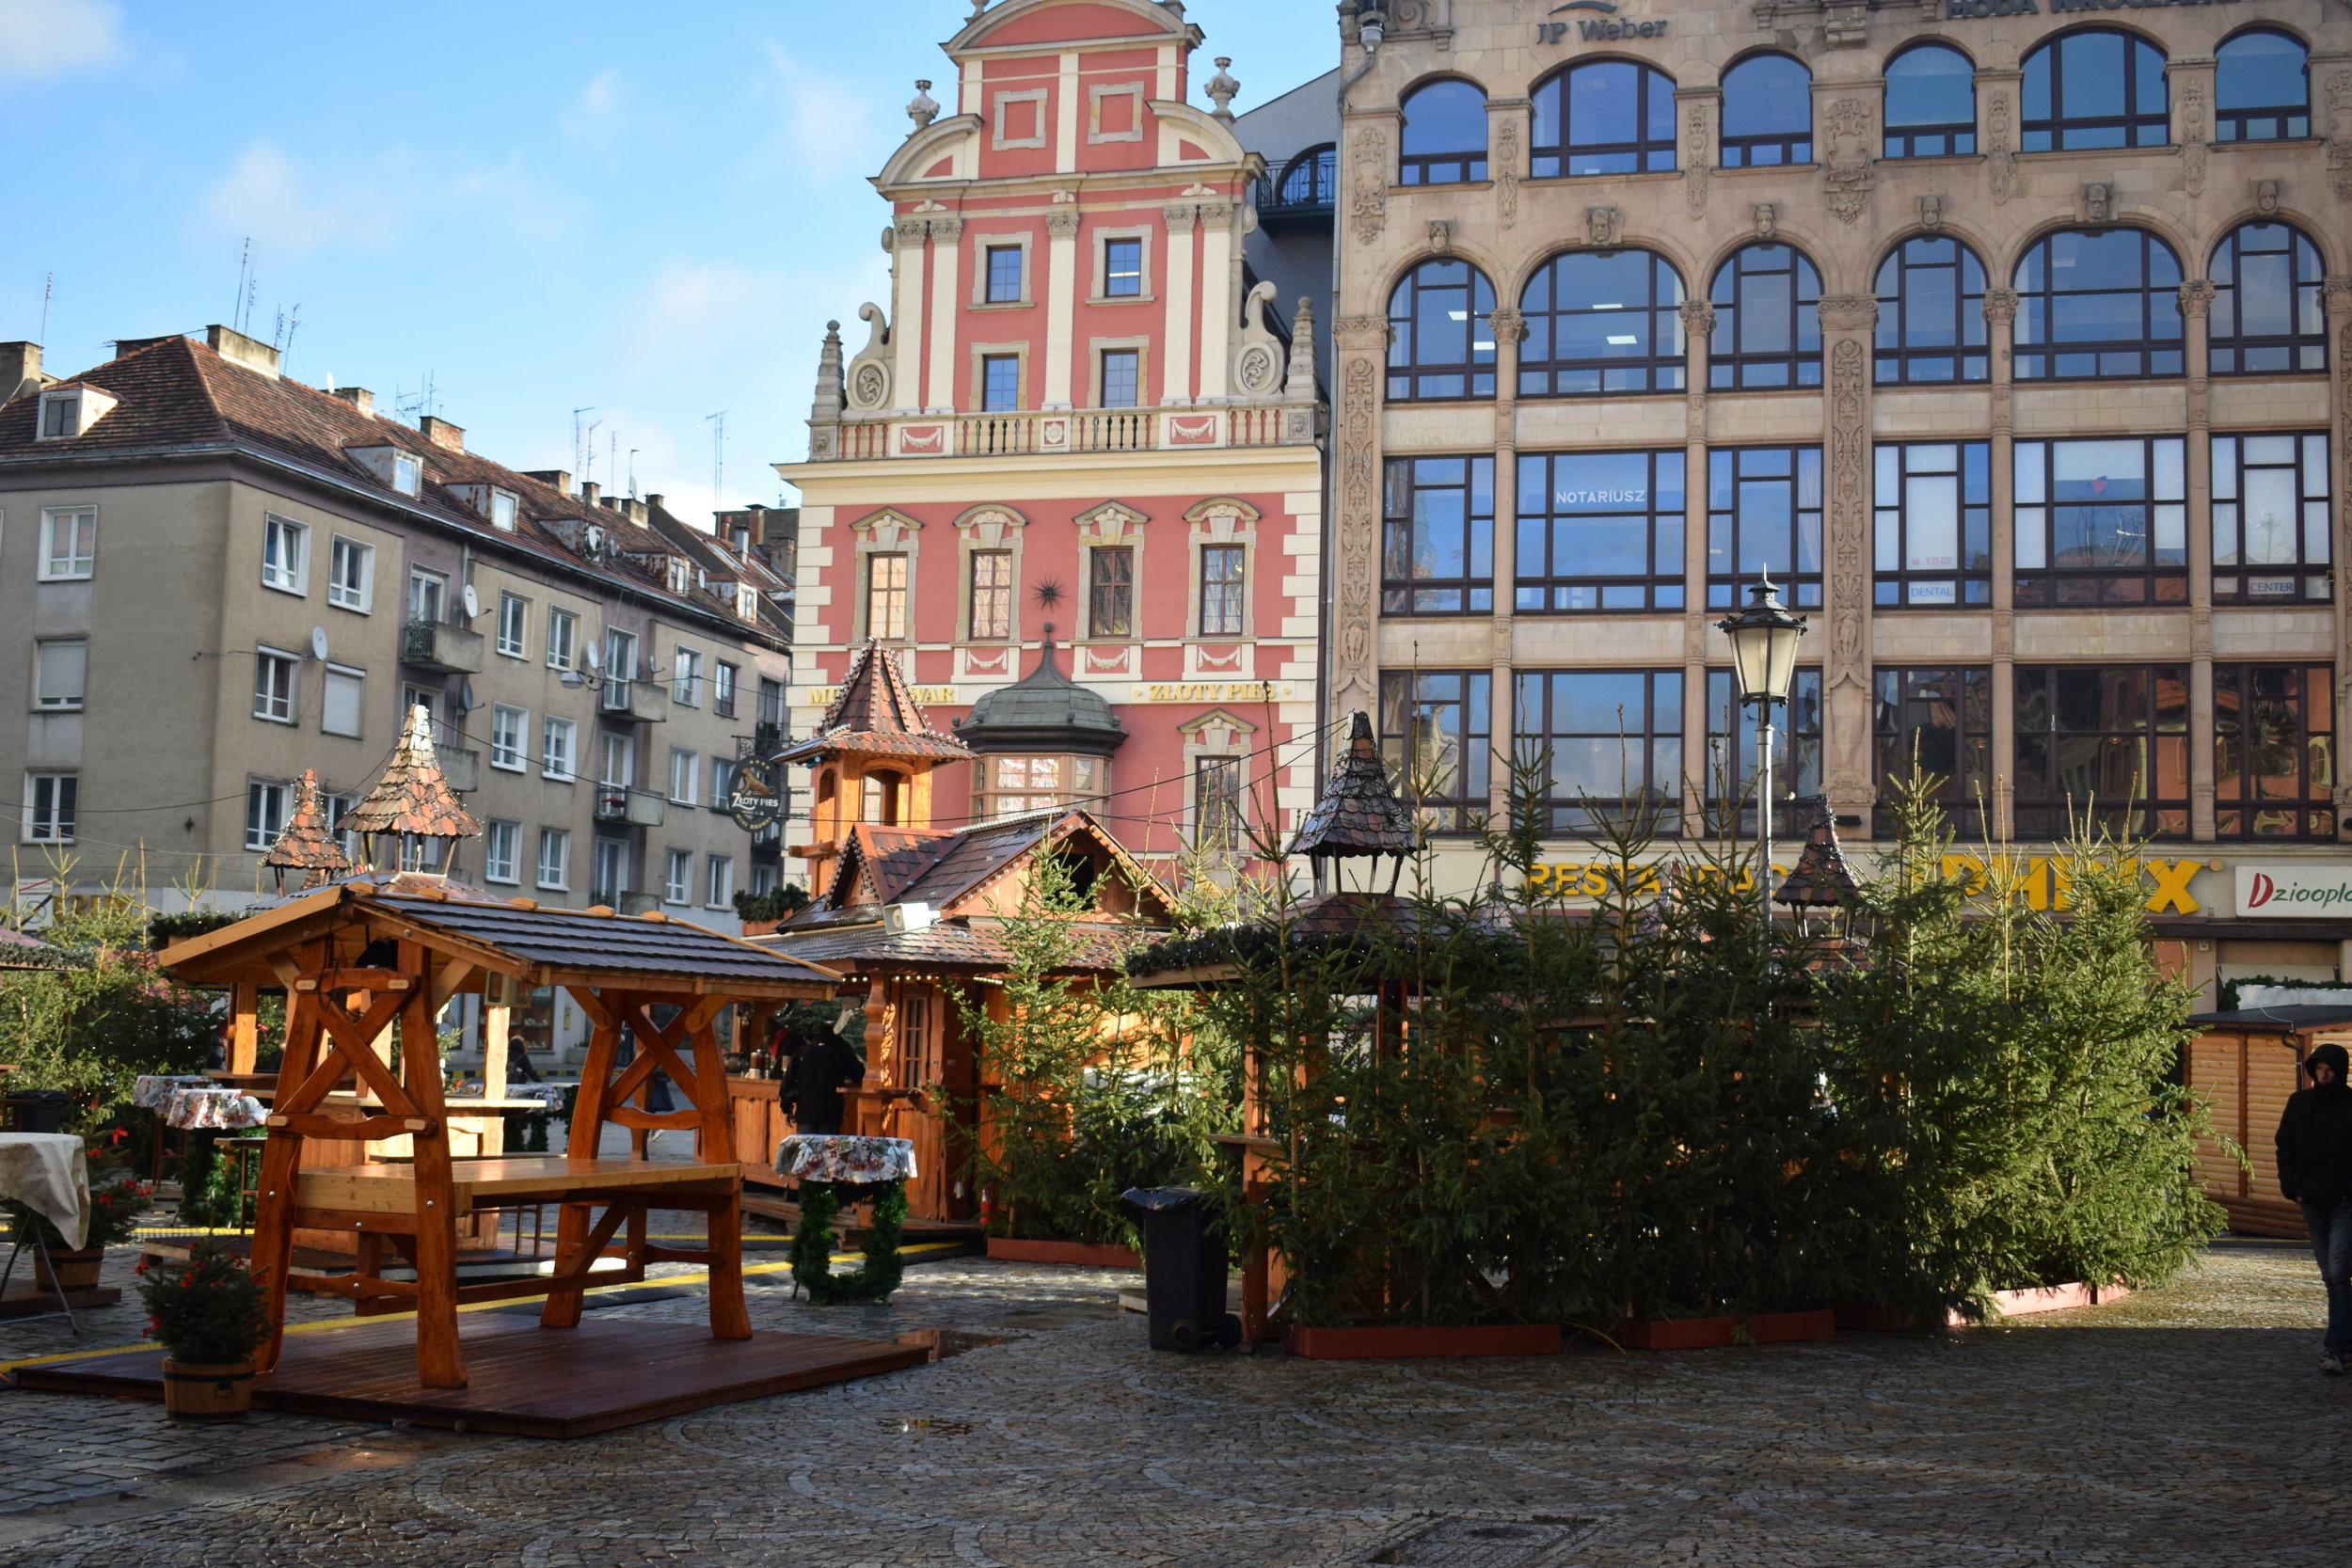 Christmas-Trees-Market-Square-Wroclaw